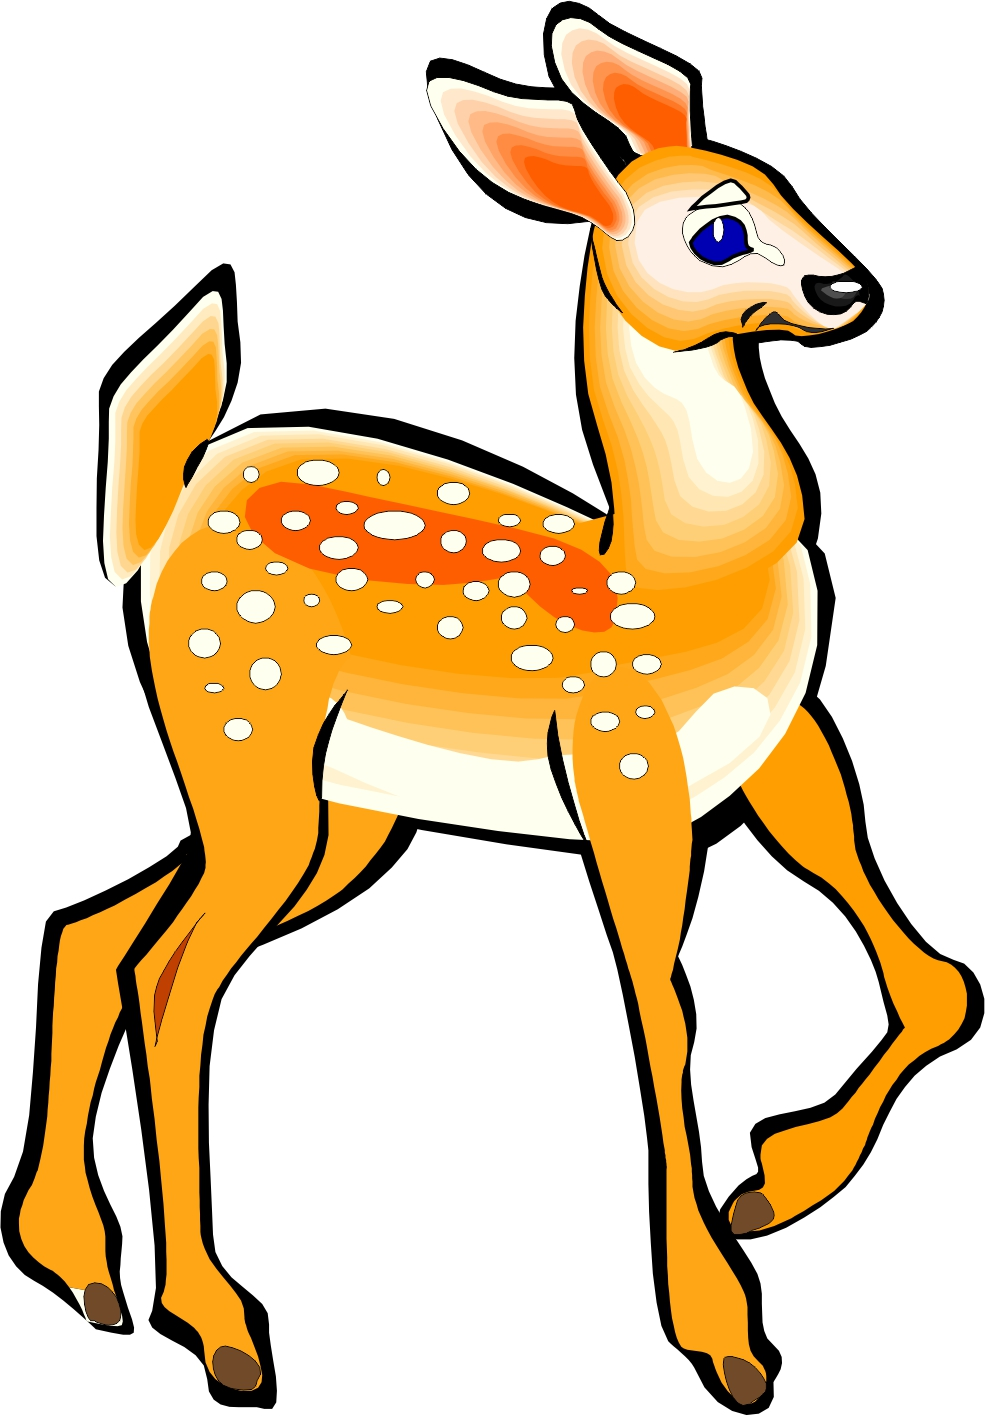 Funny Deer Hunting Cartoons Cartoon deer